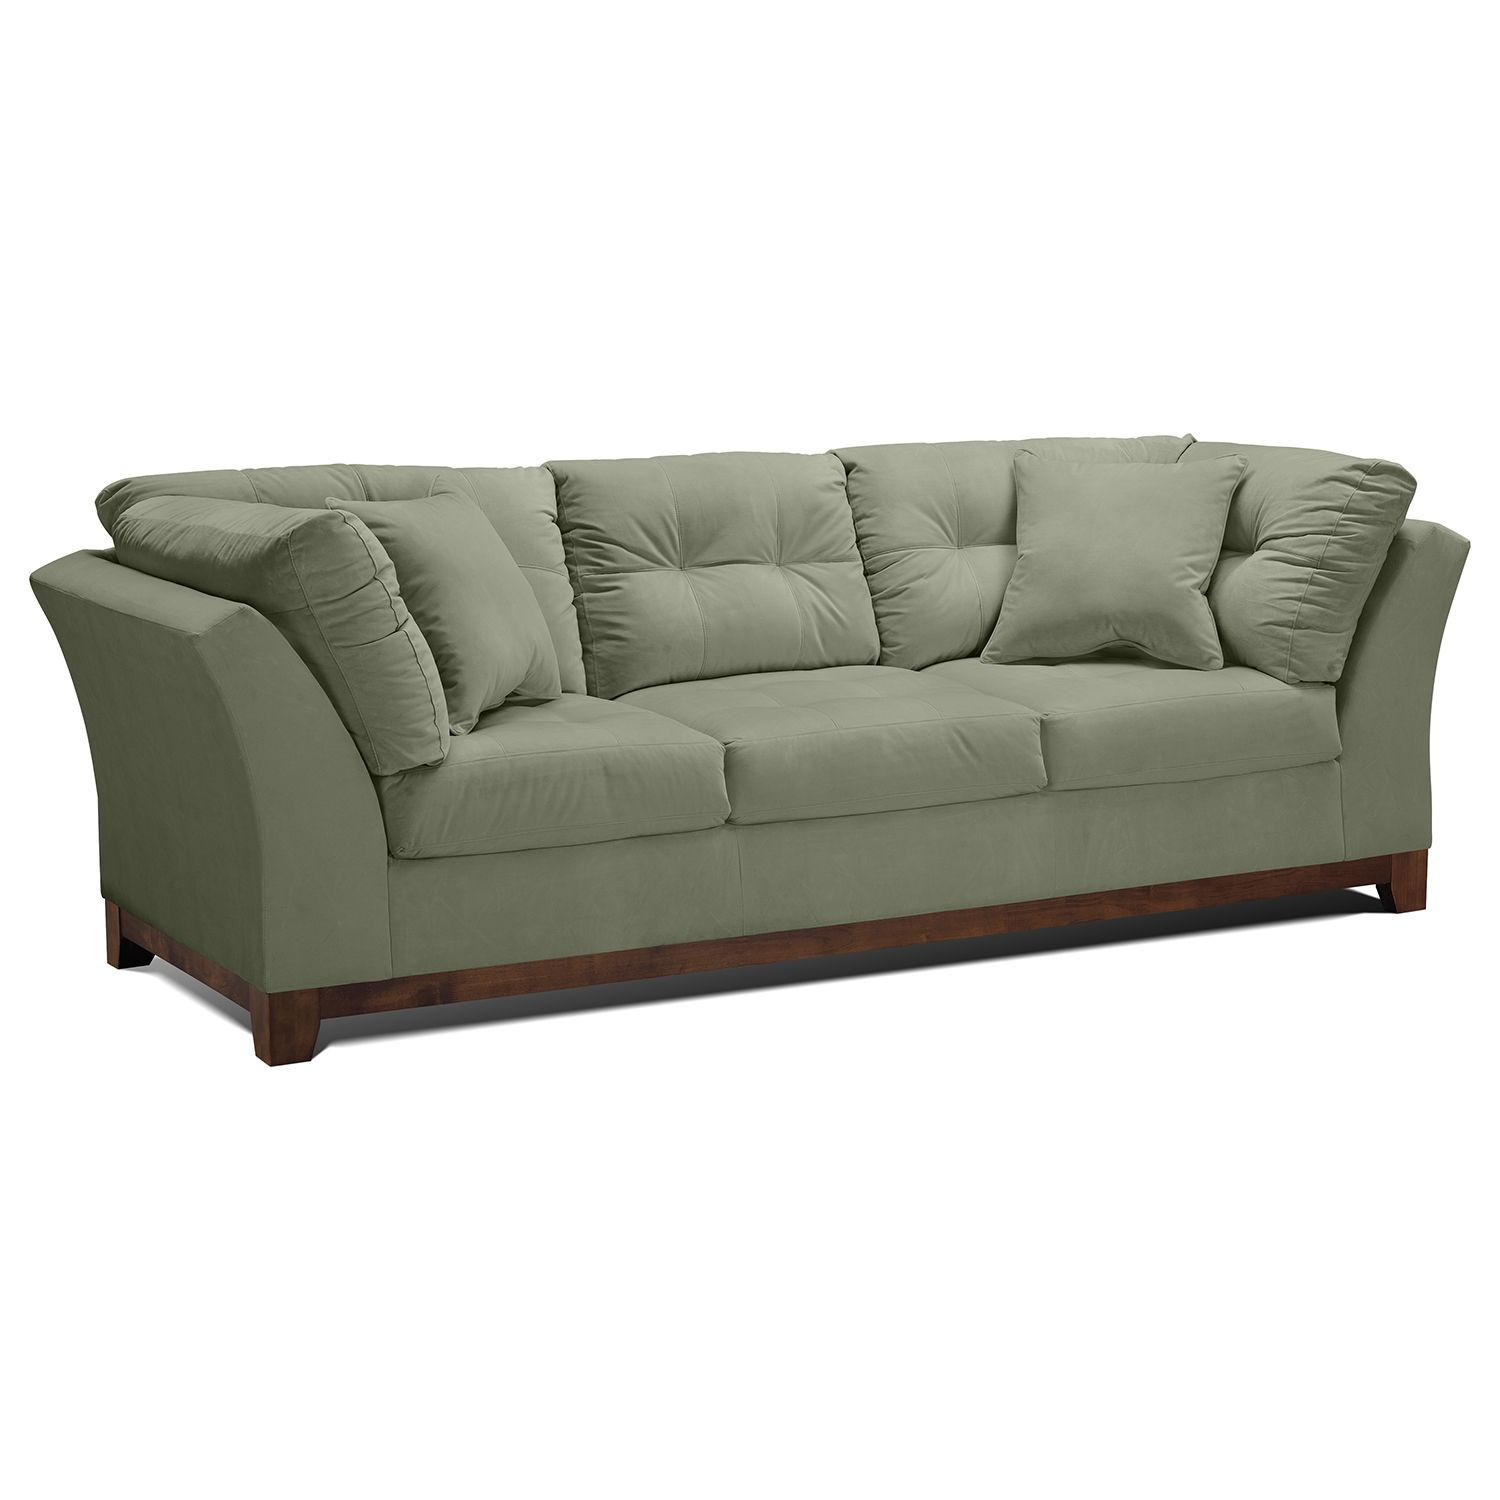 American signature furniture solace spa upholstery sofa